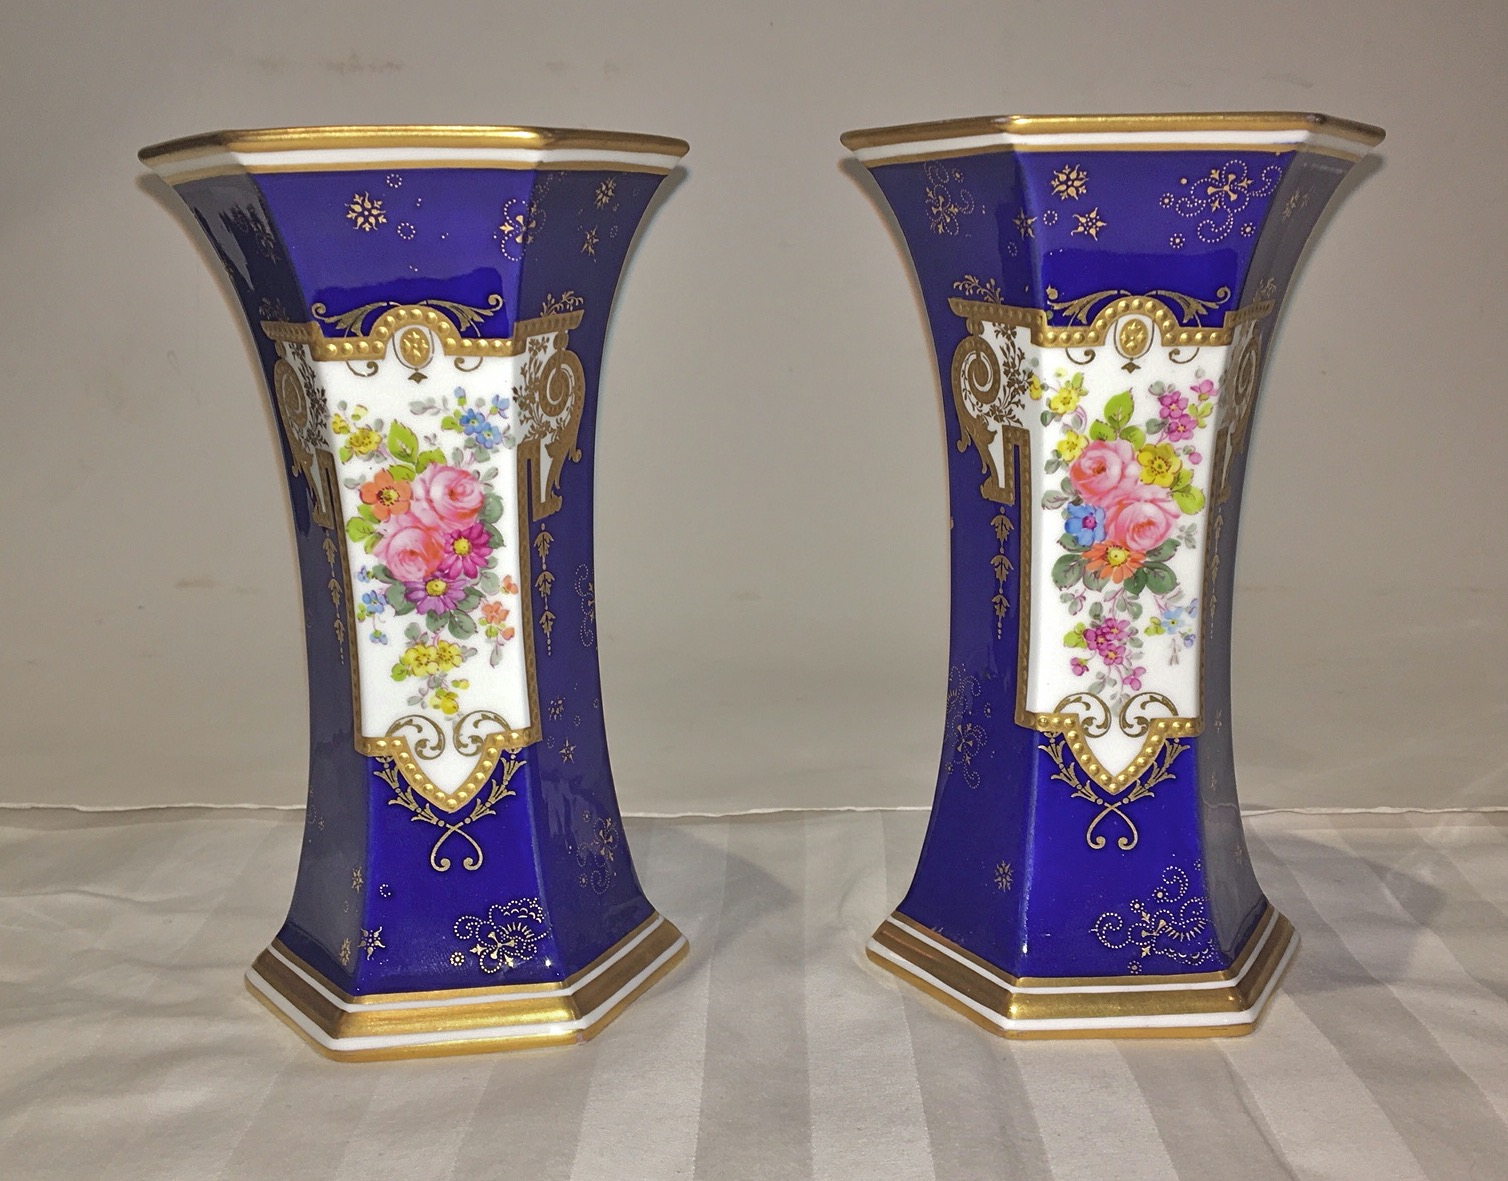 04a_A pair of Royal Crown Derby porcelain vases.jpg